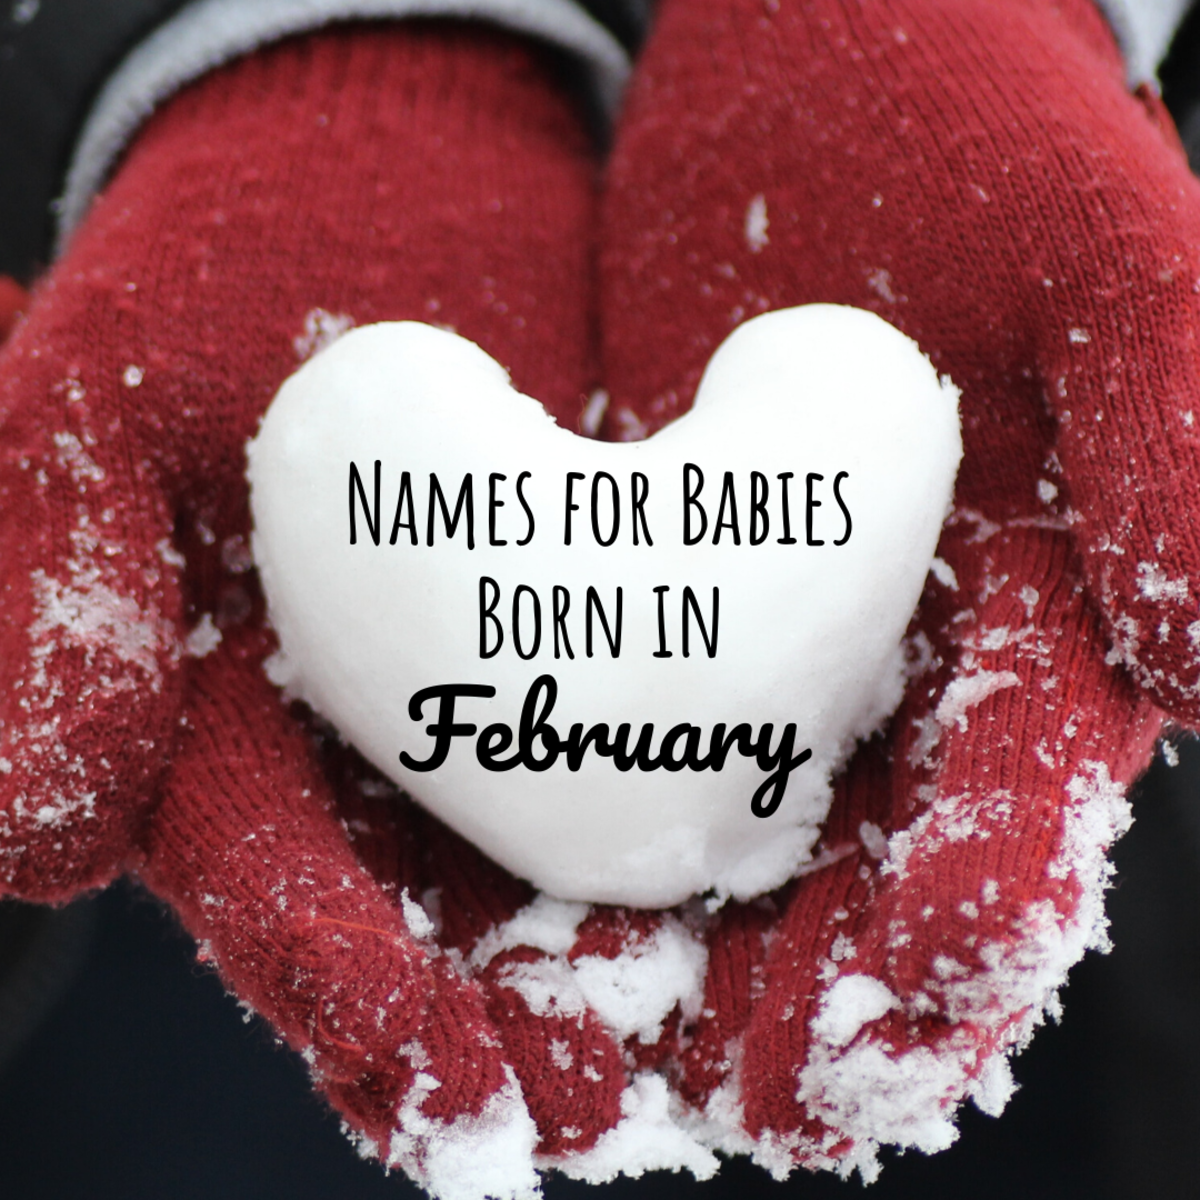 30+ February Baby Name Ideas for Girls and Boys